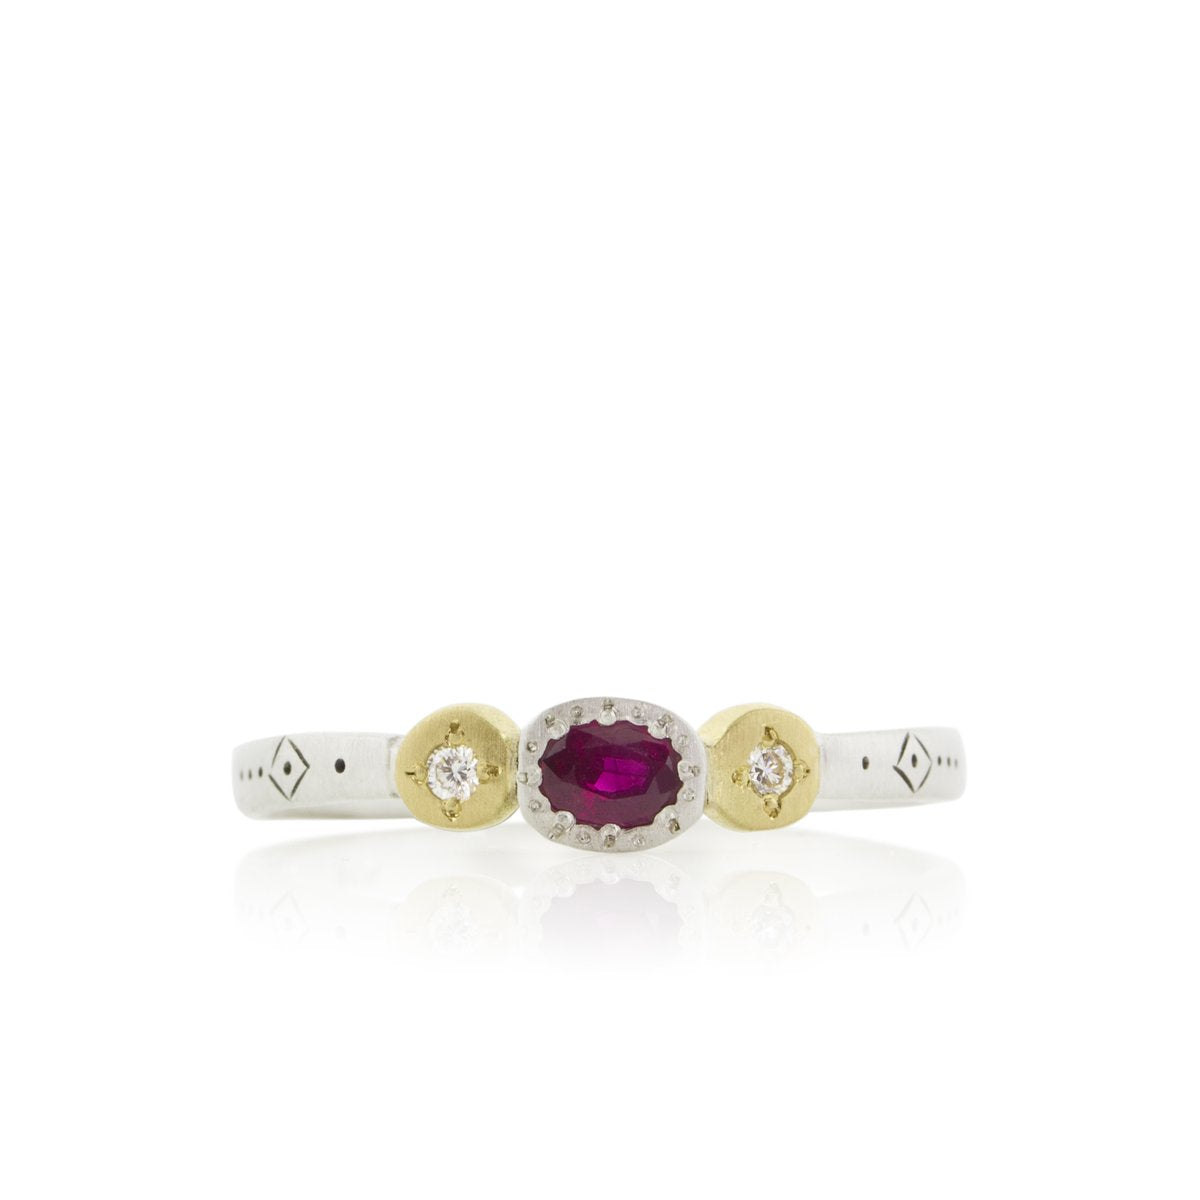 Ruby Harmony Oval and Round Charm Ring | Art + Soul Gallery